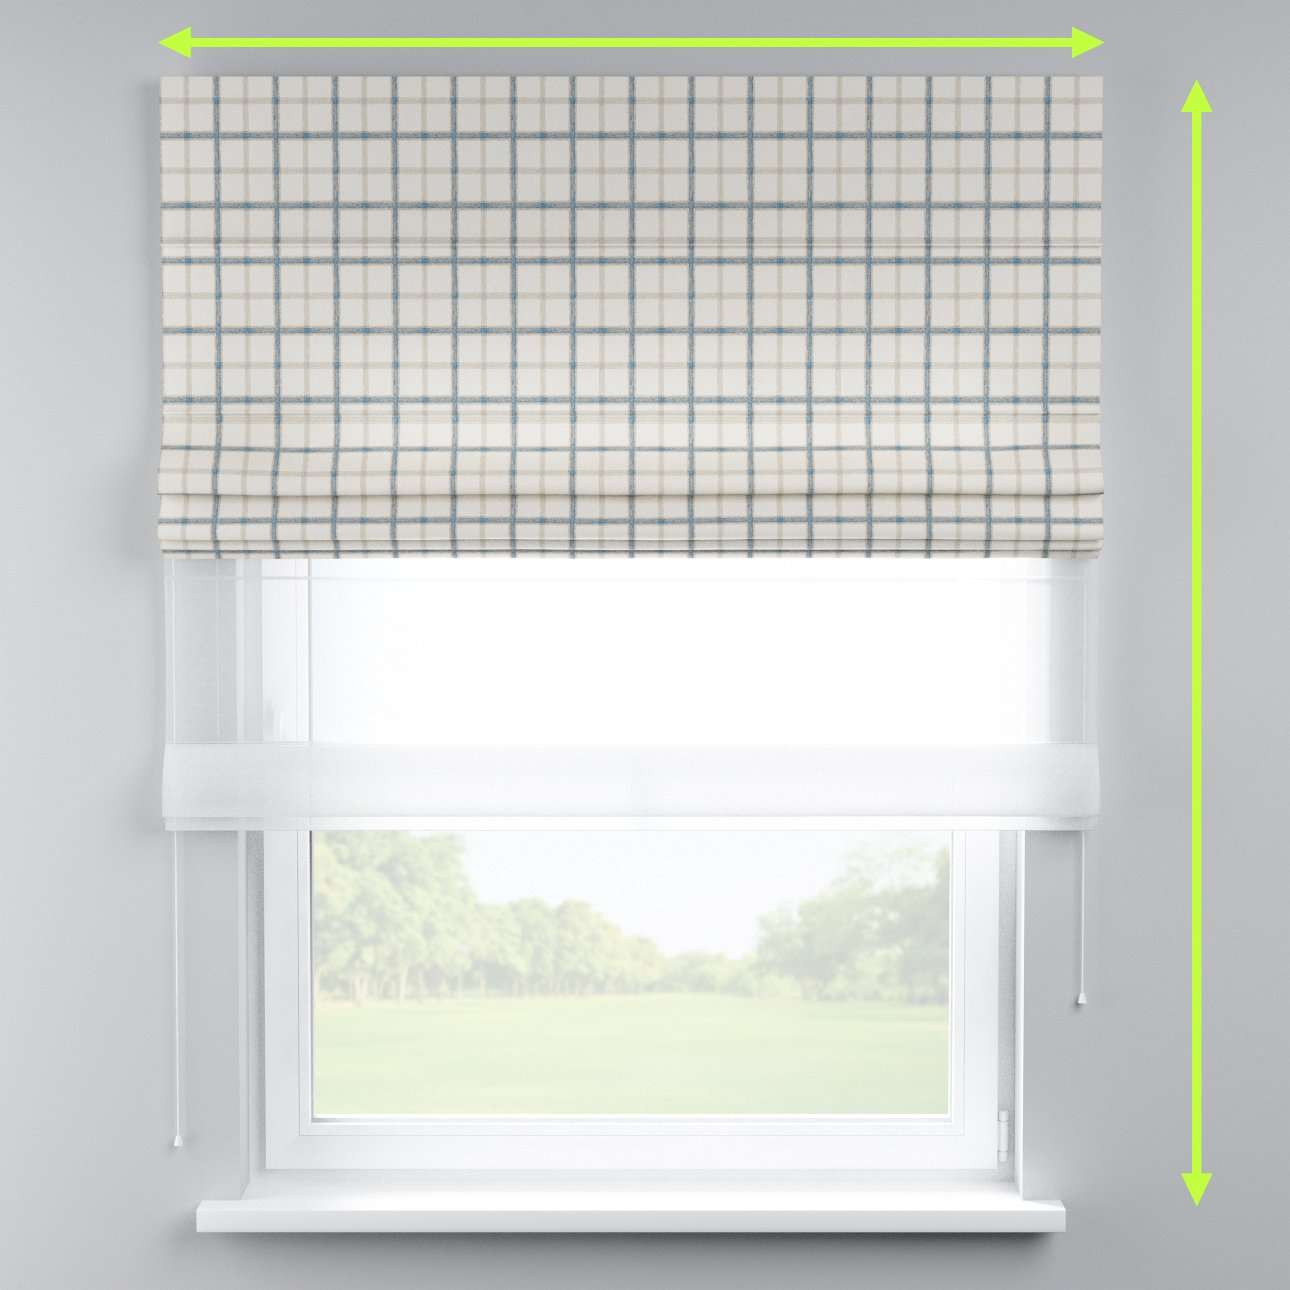 Voile and fabric roman blind (DUO II) in collection Avinon, fabric: 131-66